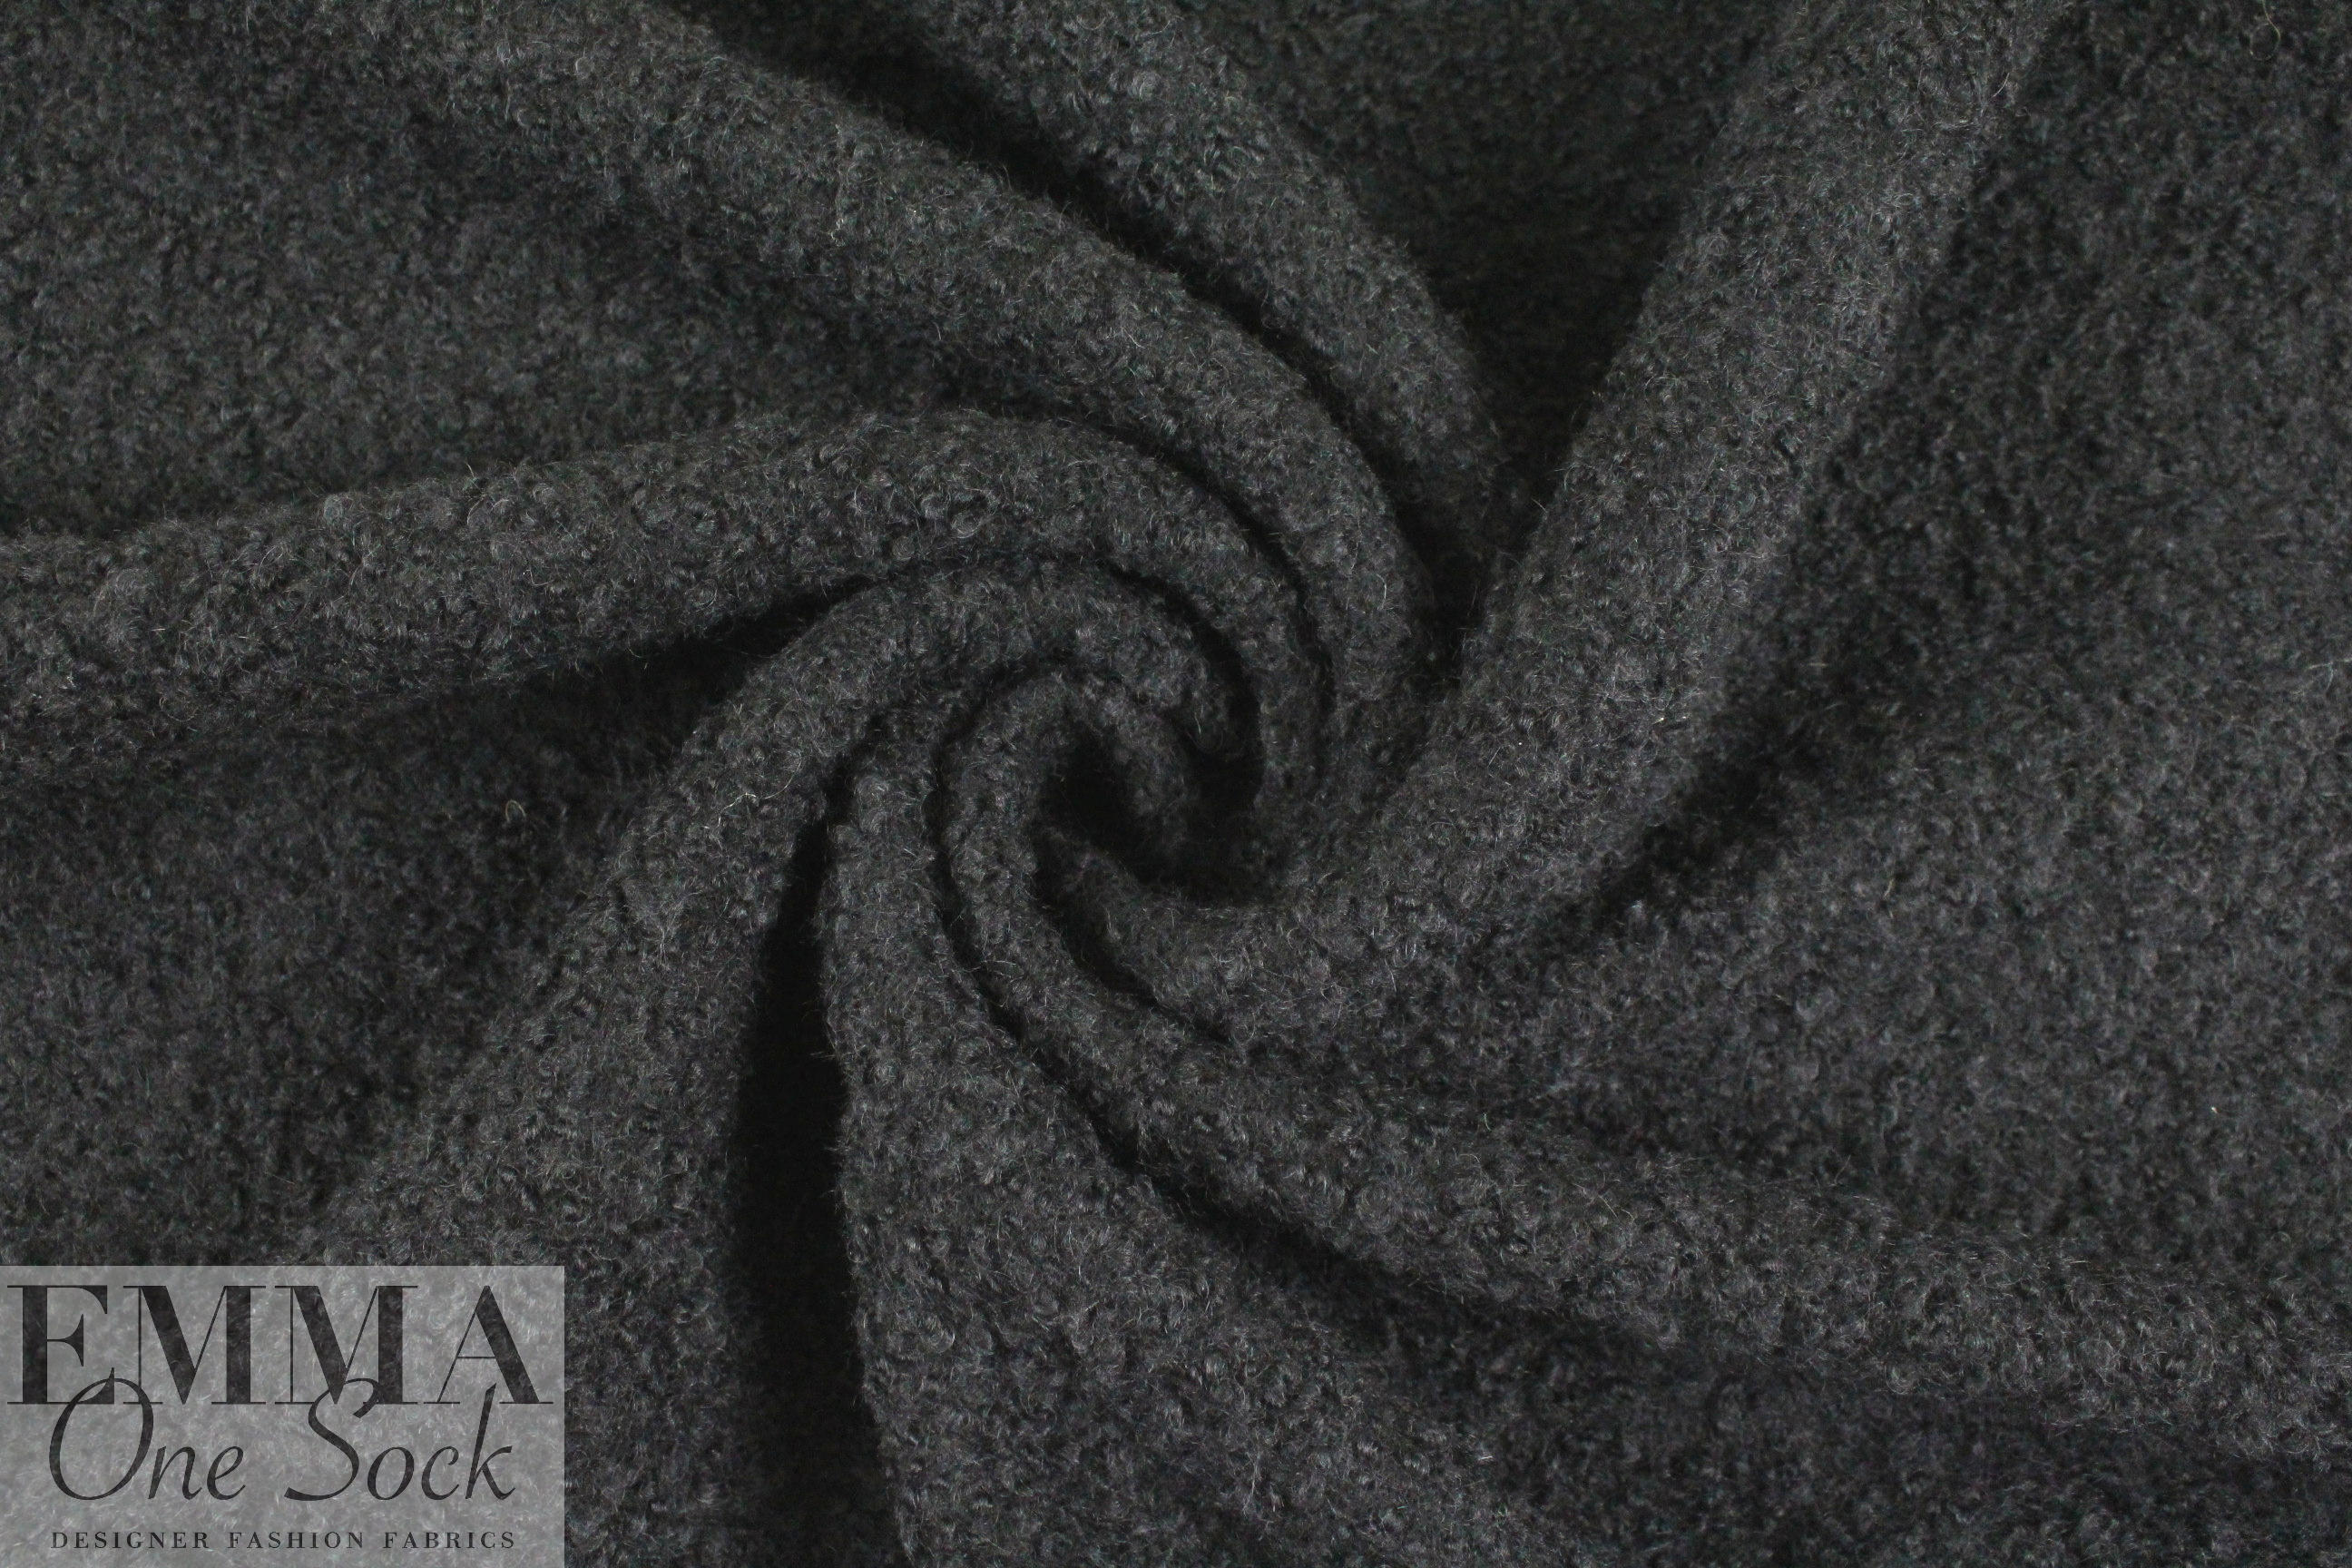 The0ry Textured Poodle Boucle Wool Coating Black From Ply Conversion Tables Fabric Photo